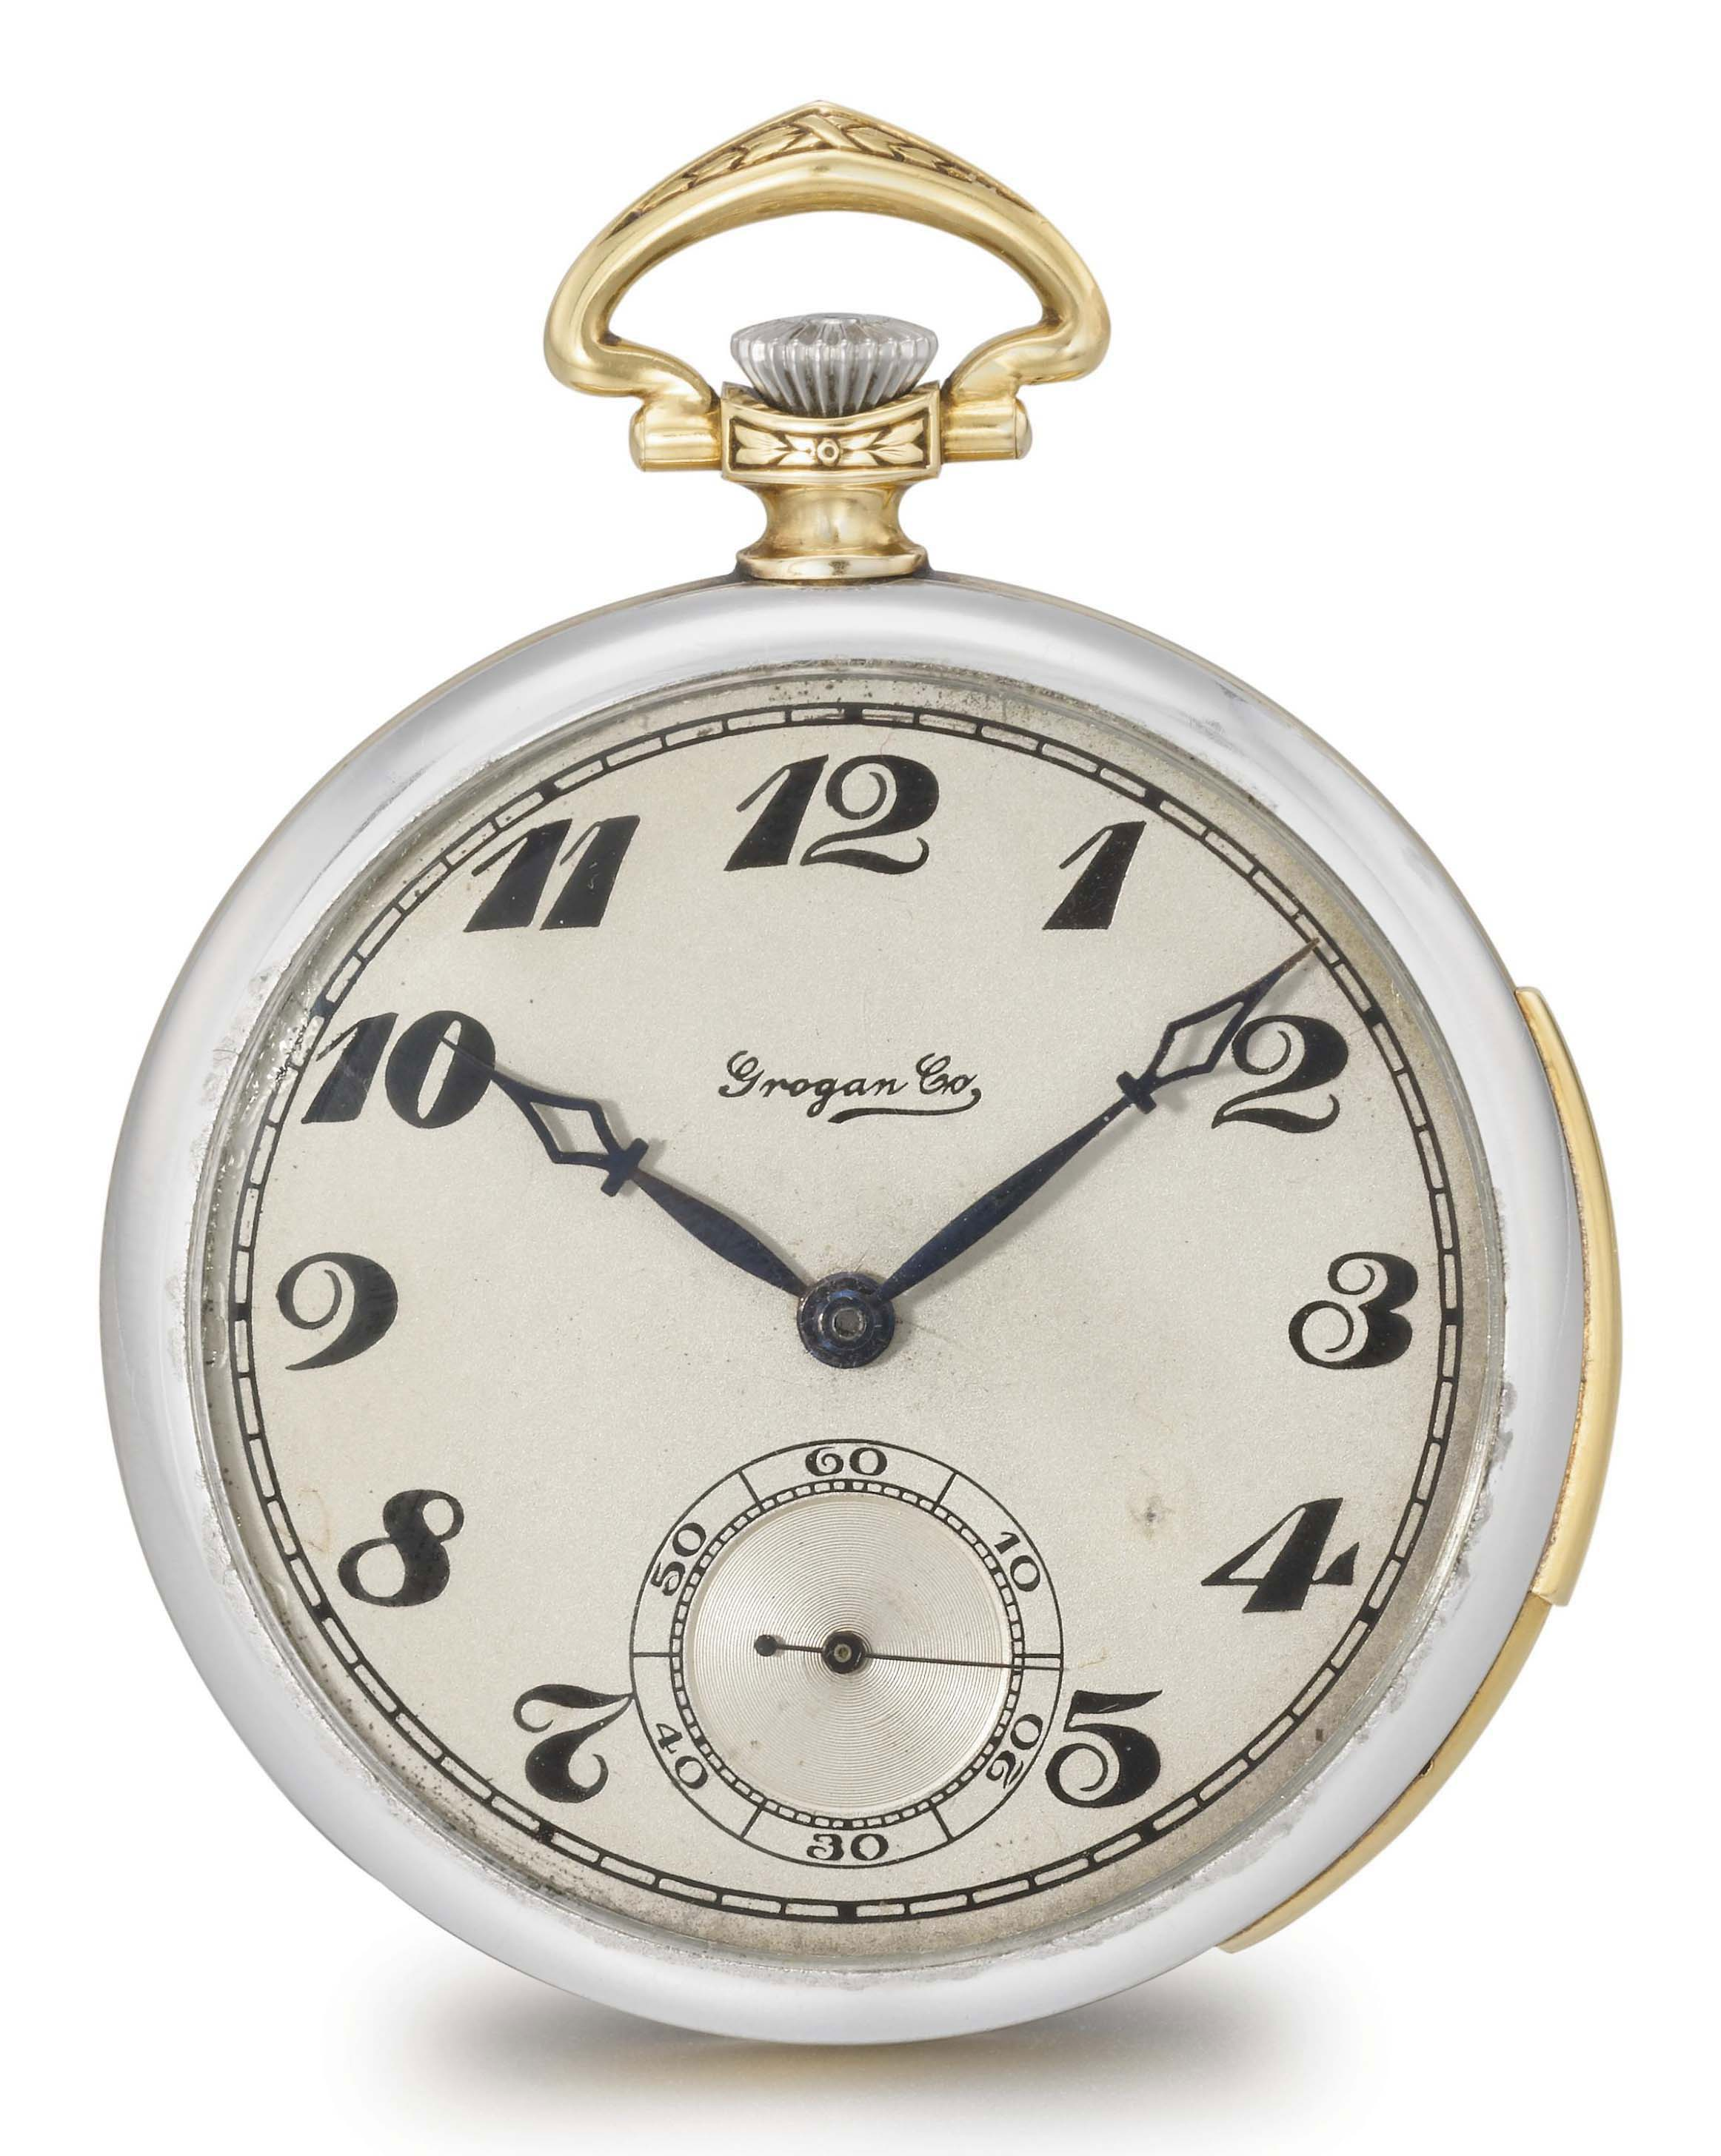 C.H. Meylan made for Grogan Co. A fine platinum and 18K gold Art Deco openface minute repeating dress watch